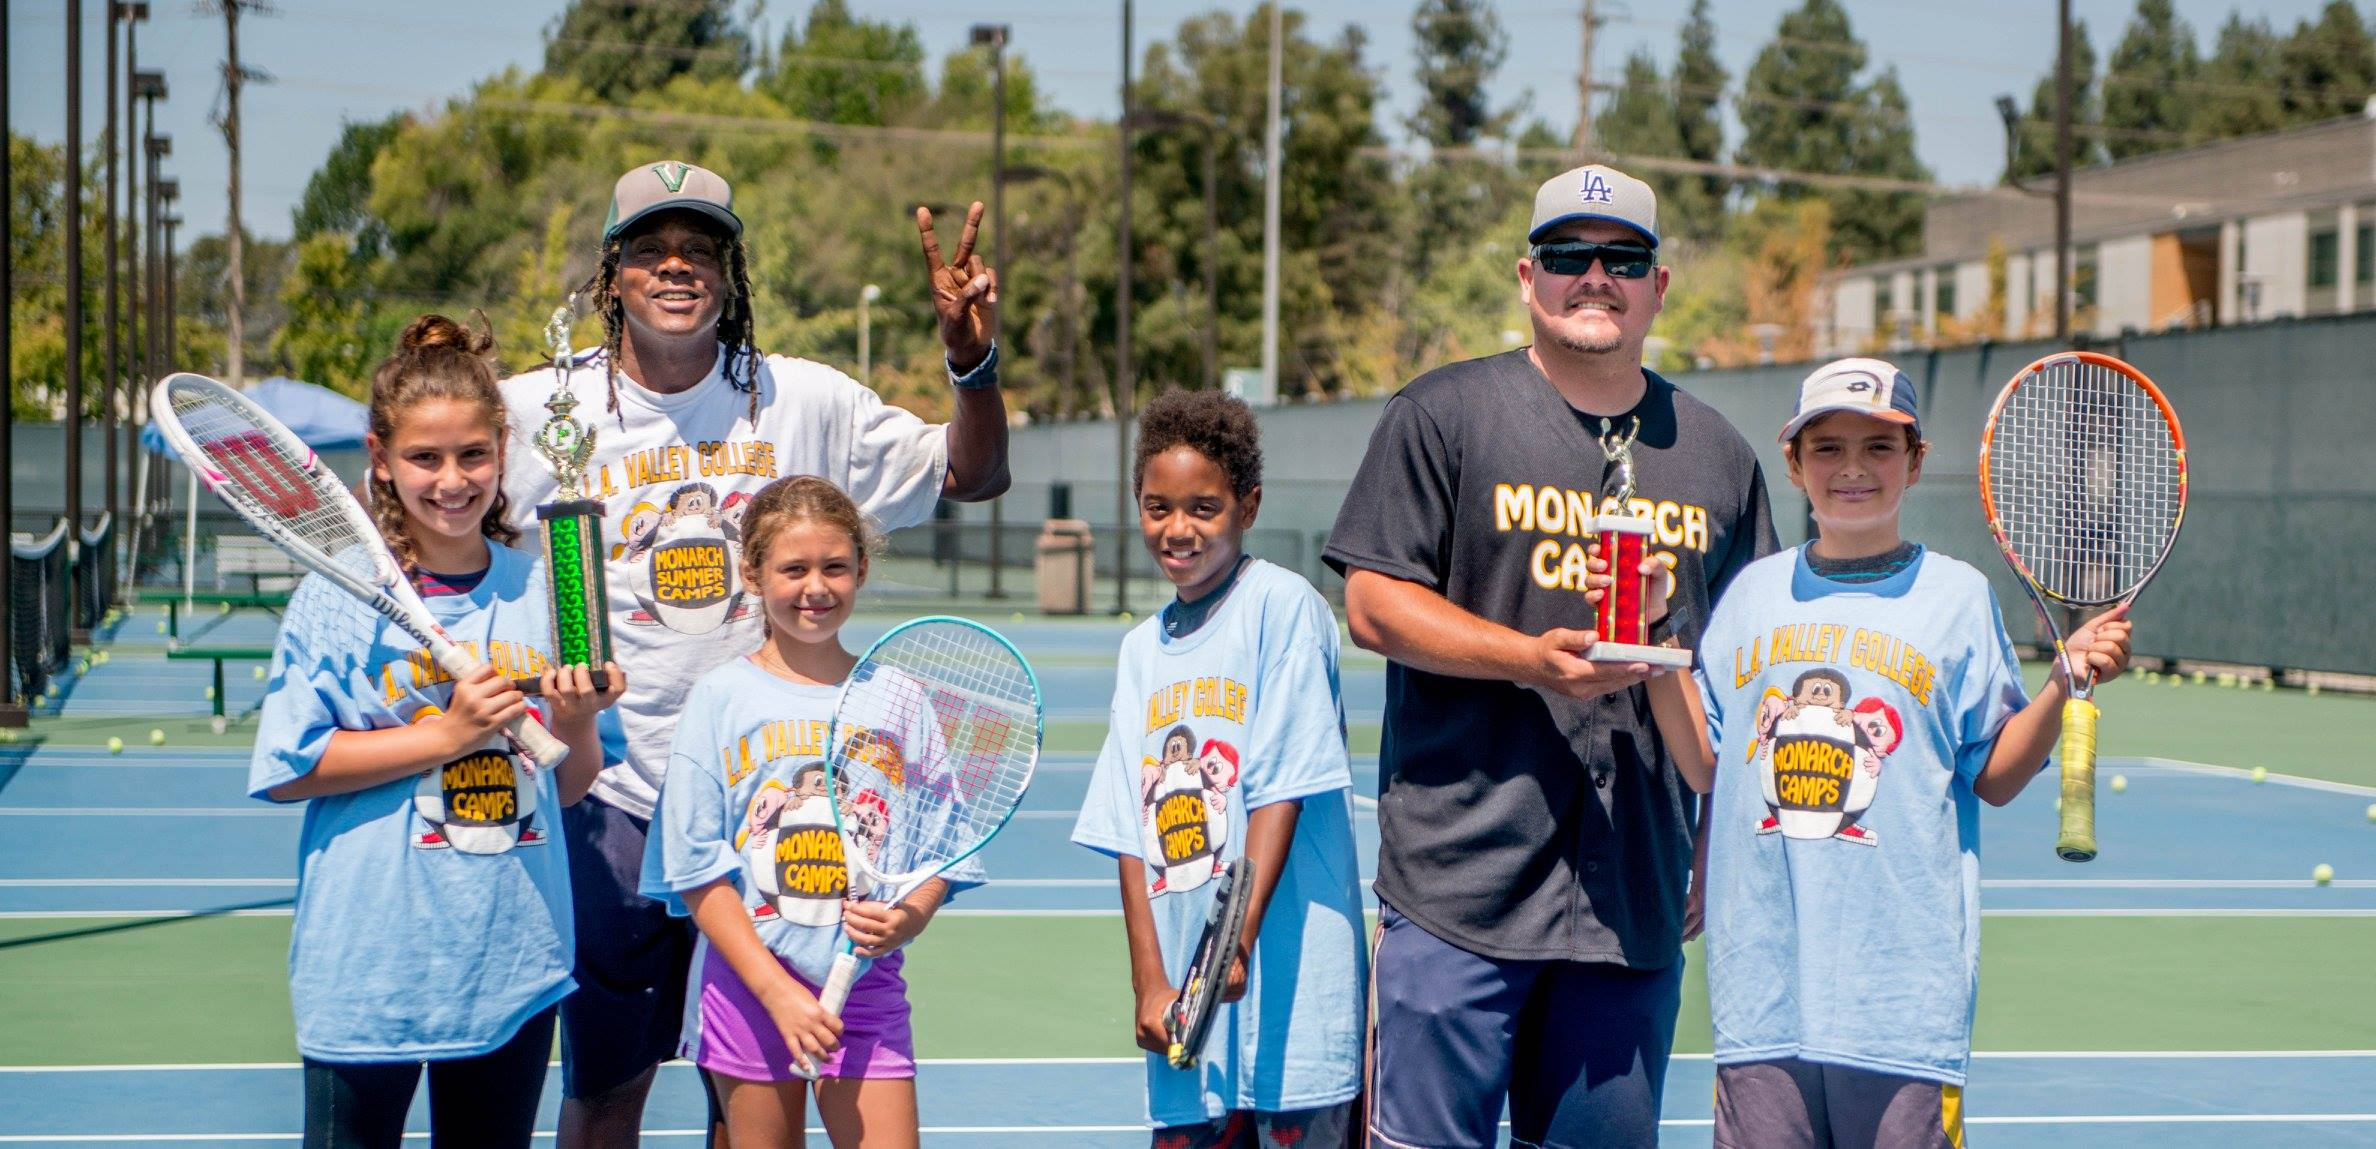 https://monarchcamps.com/wp-content/uploads/2018/01/monarch-camps-summer-day-camp-in-los-angeles-tennis-camp-children-smiling-and-holding-tennis-rackets.jpg